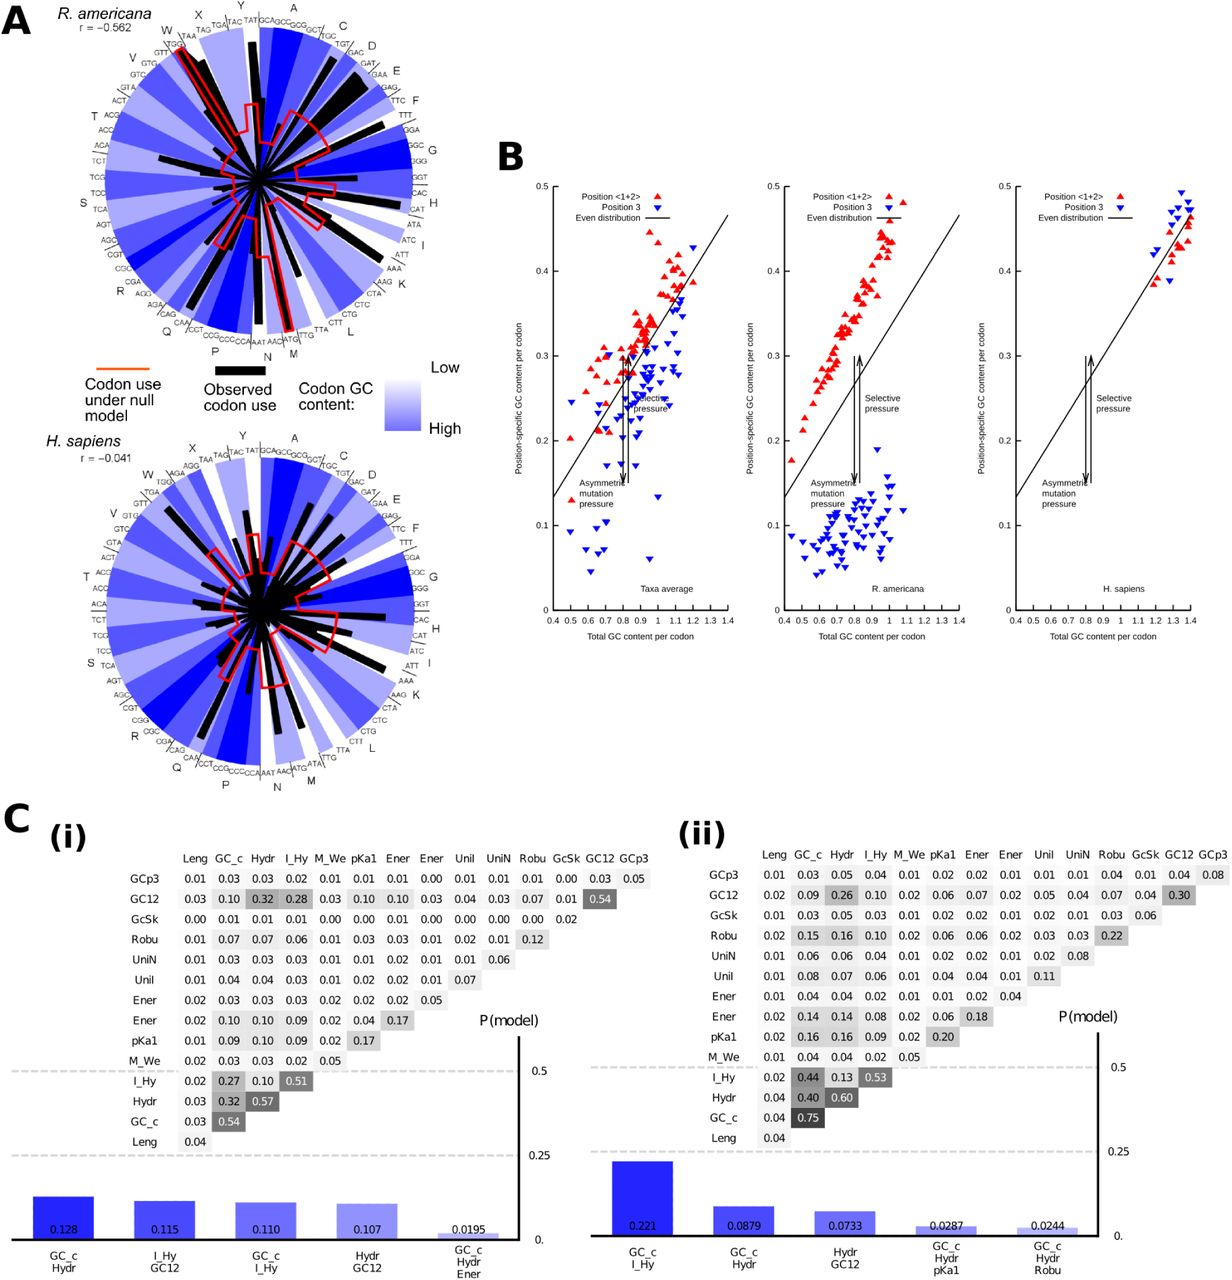 Evolutionary inference across eukaryotes identifies specific